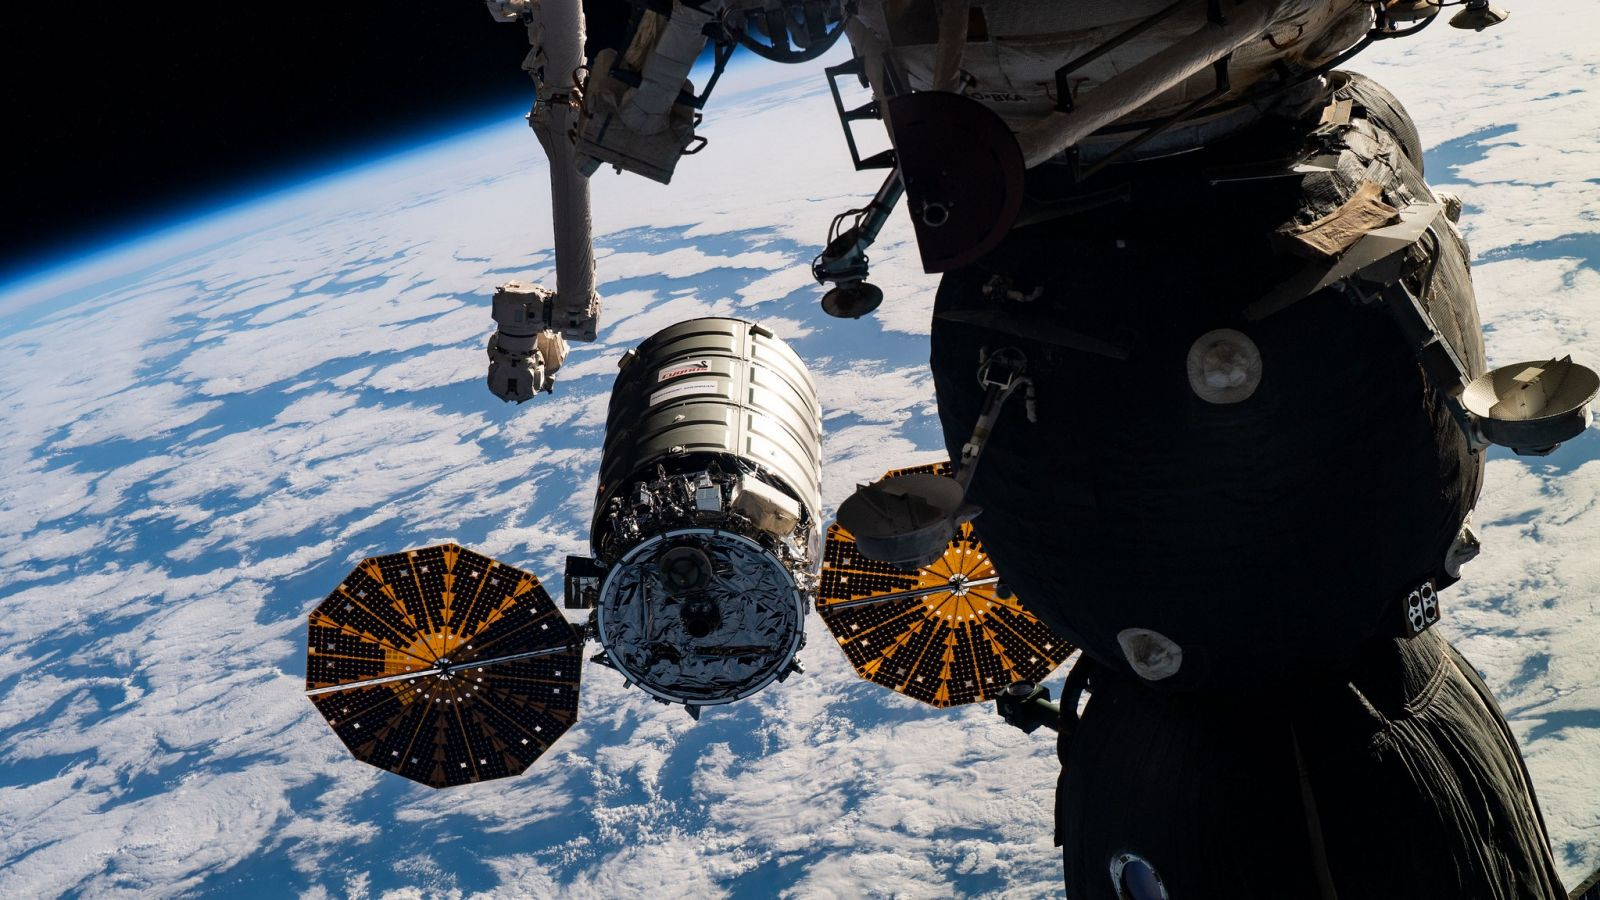 The NG-11 Cygnus spacecraft as it rendezvoused with the ISS in April 2019. Photo Credit: NASA